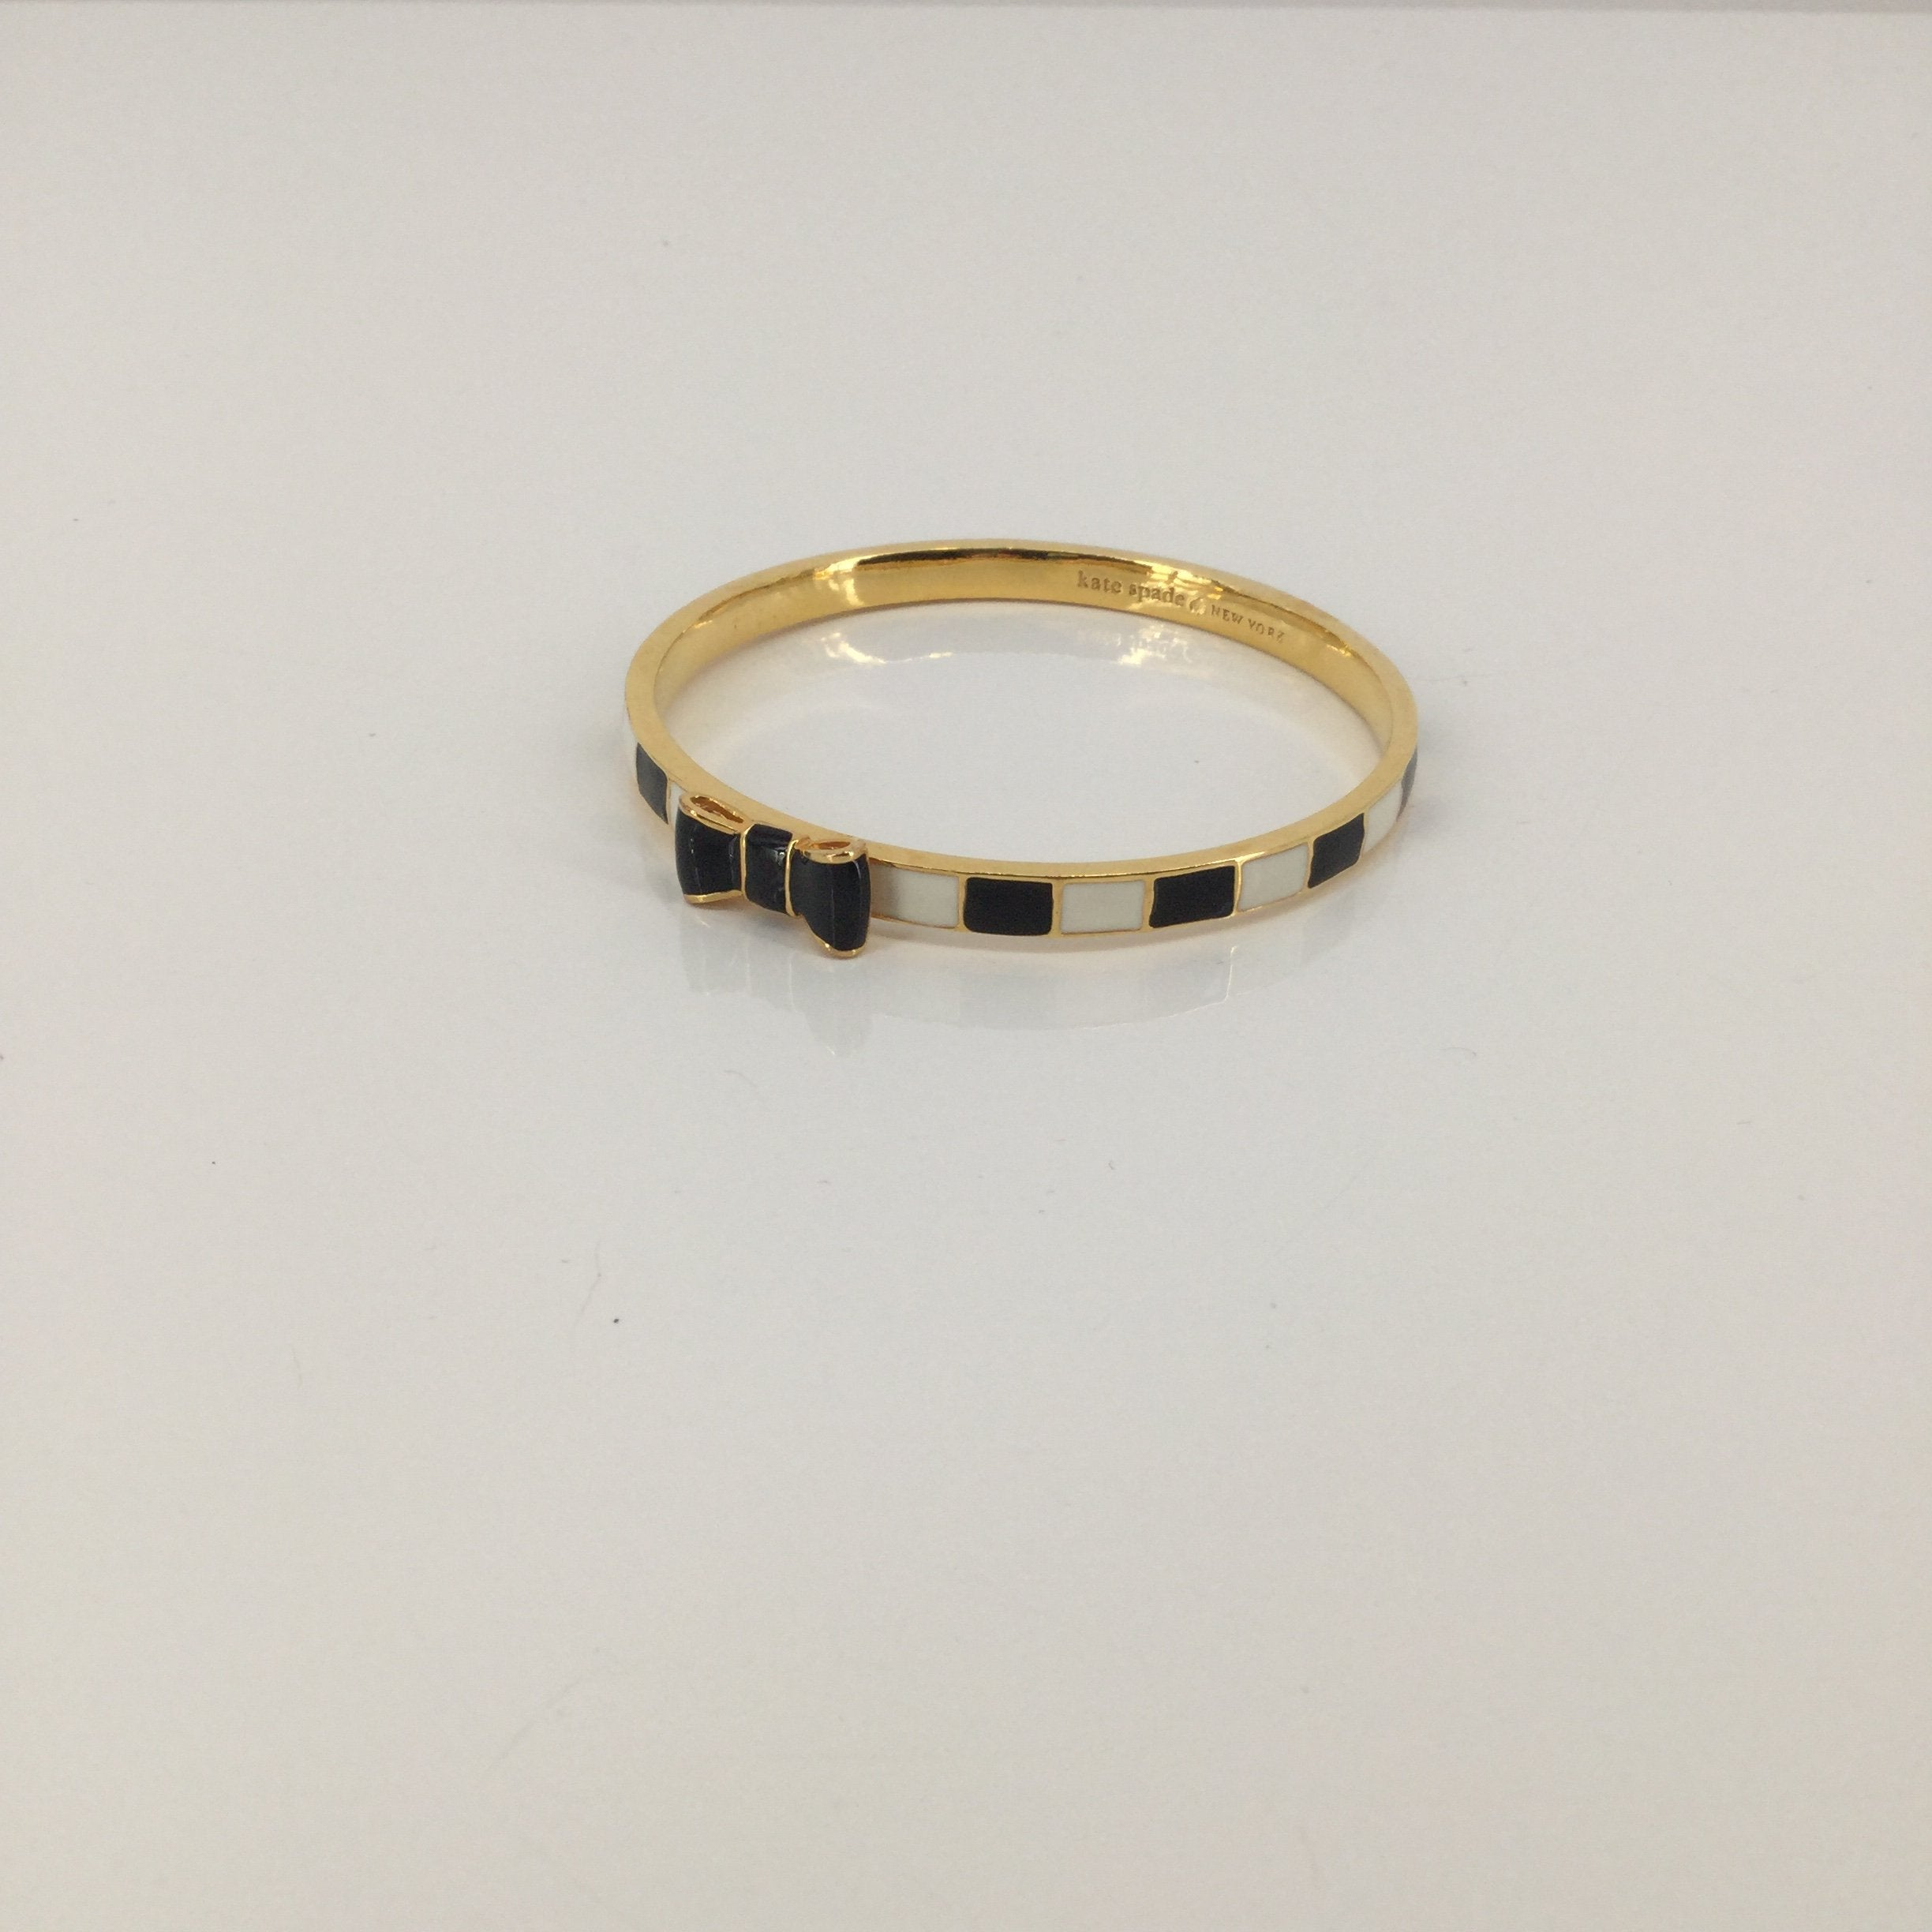 Kate Spade Gold, White, And Black Bracelet - <P>THIS KATE SPADE BRACELET IS GOLD WITH WHITE AND BLACK ON THE OUTSIDE. IT FEATURES A CUTE BOW IN THE FRONT. THIS BRACELET SLIPS ON OVER YOUR HAND. IT IS IN VERY GOOD CONDITION WITH SOME MINOR WEAR (SEE PHOTOS).</P>